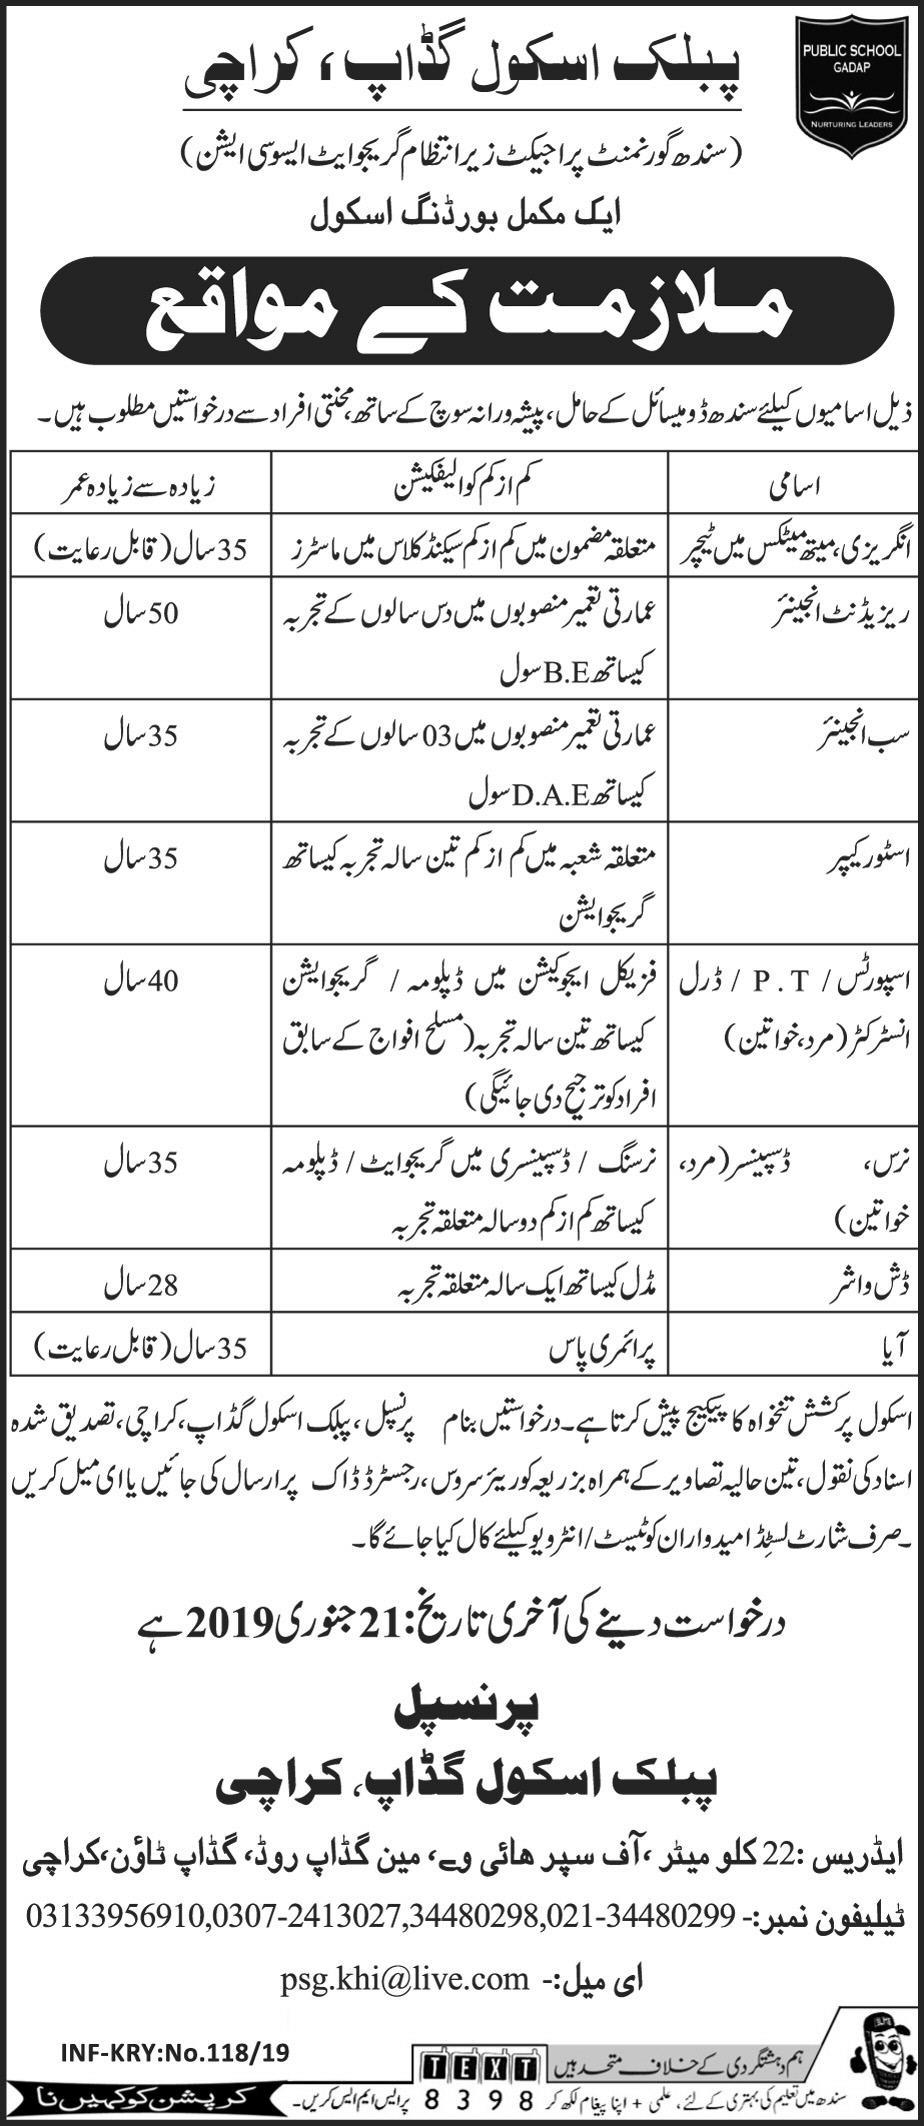 Teaching Jobs In Karachi 2019